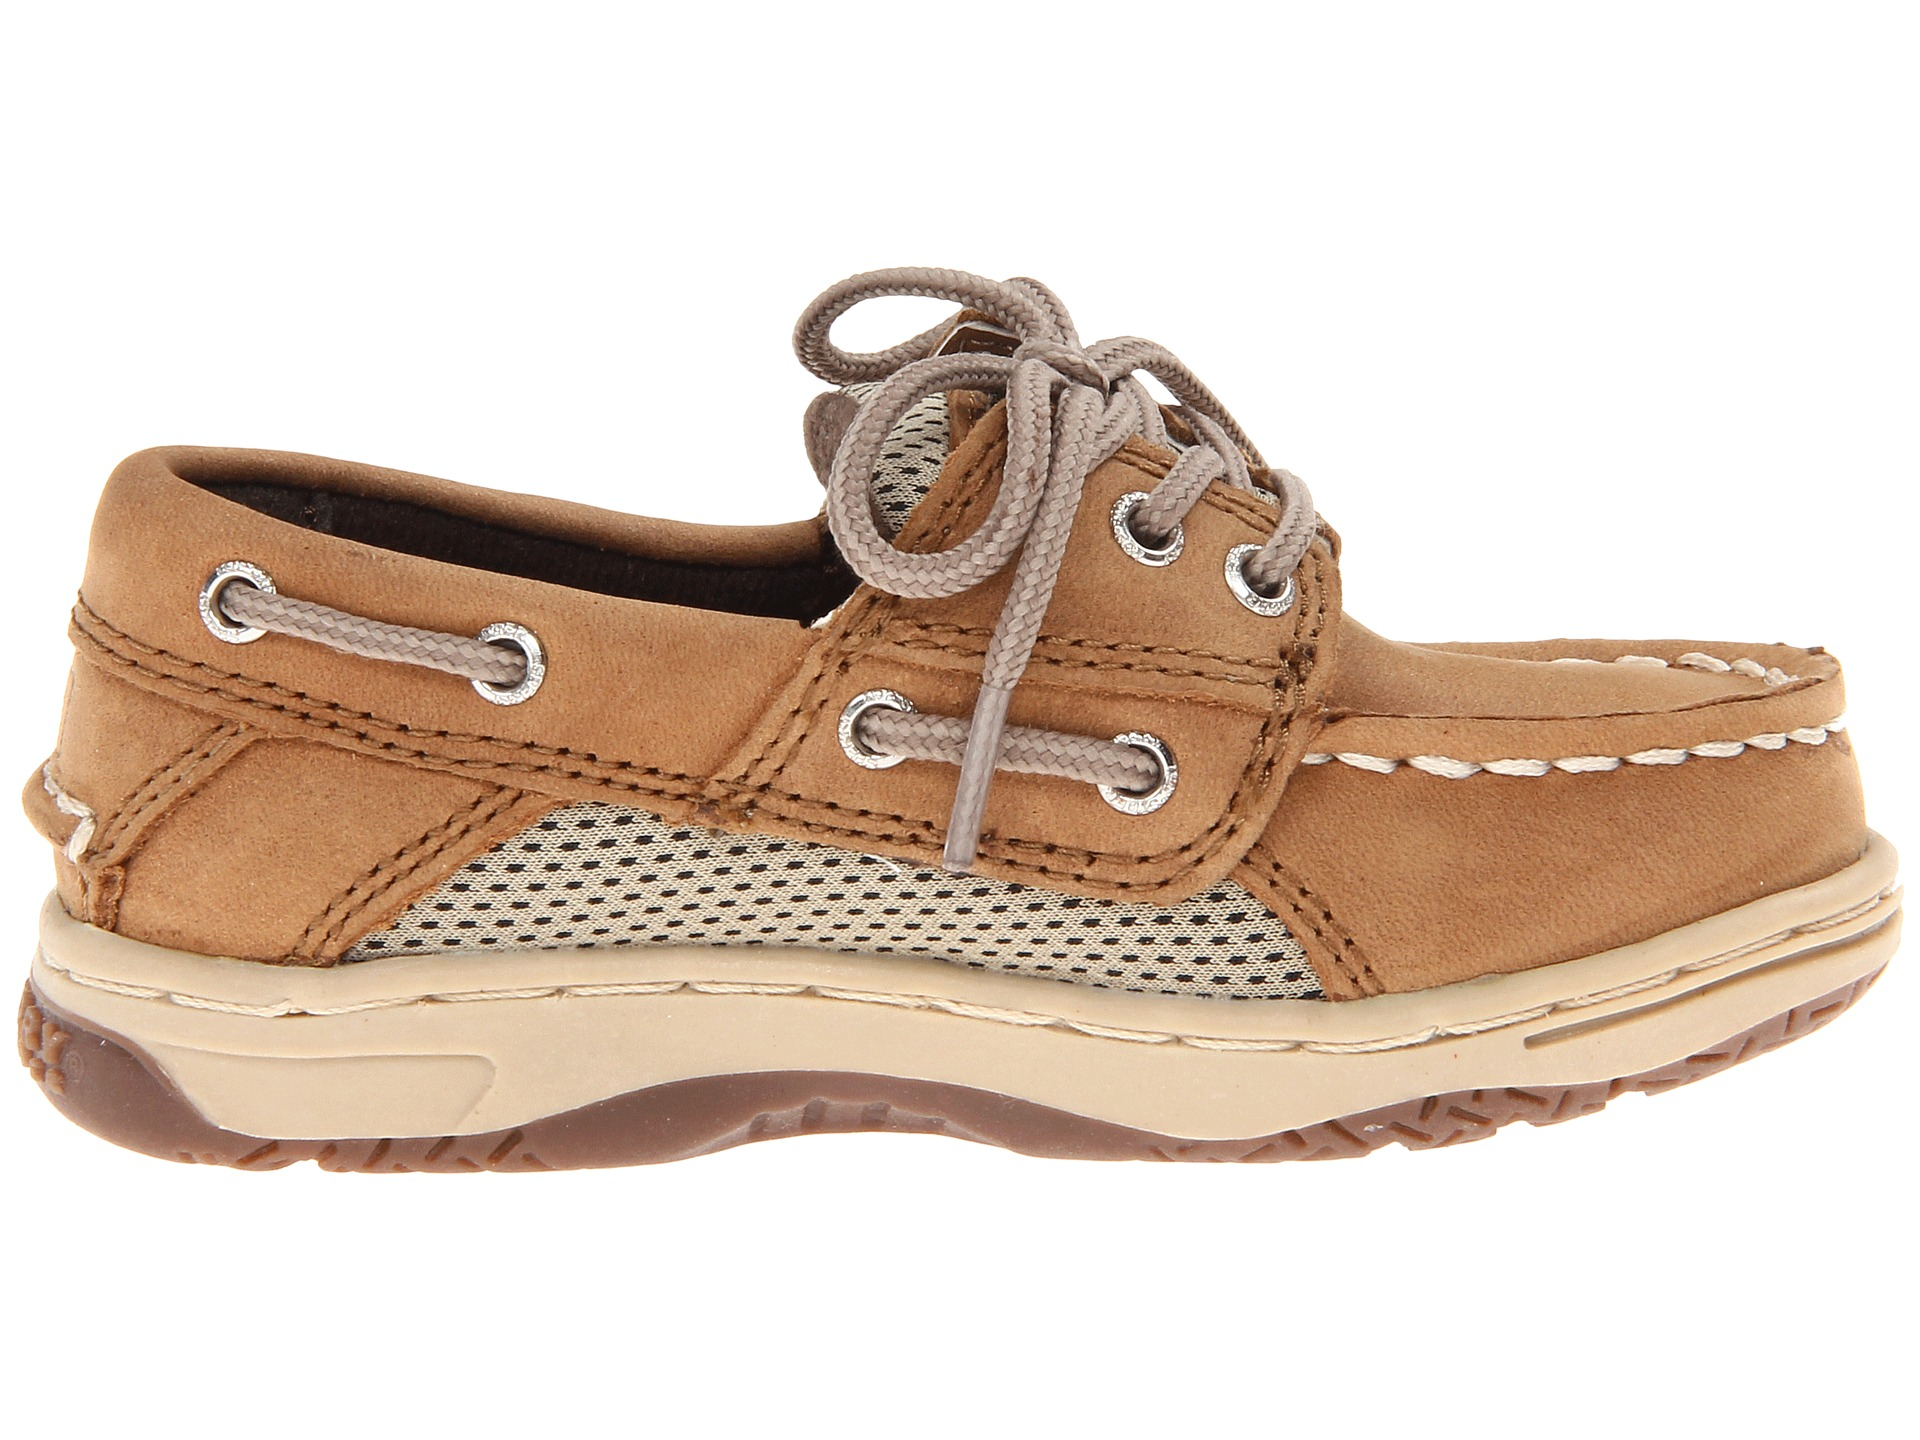 There are duck boots for sale on Etsy, and they cost $ on Sperry Boat Shoes, Sneakers, Duck Boots & Sandals - Sperry Boat Shoes & Sandals. Sperrys have logged more miles on the sea than any other deck shoe brand since the company began. Finely crafted and designed for performance, Sperrys are created for men and women with .